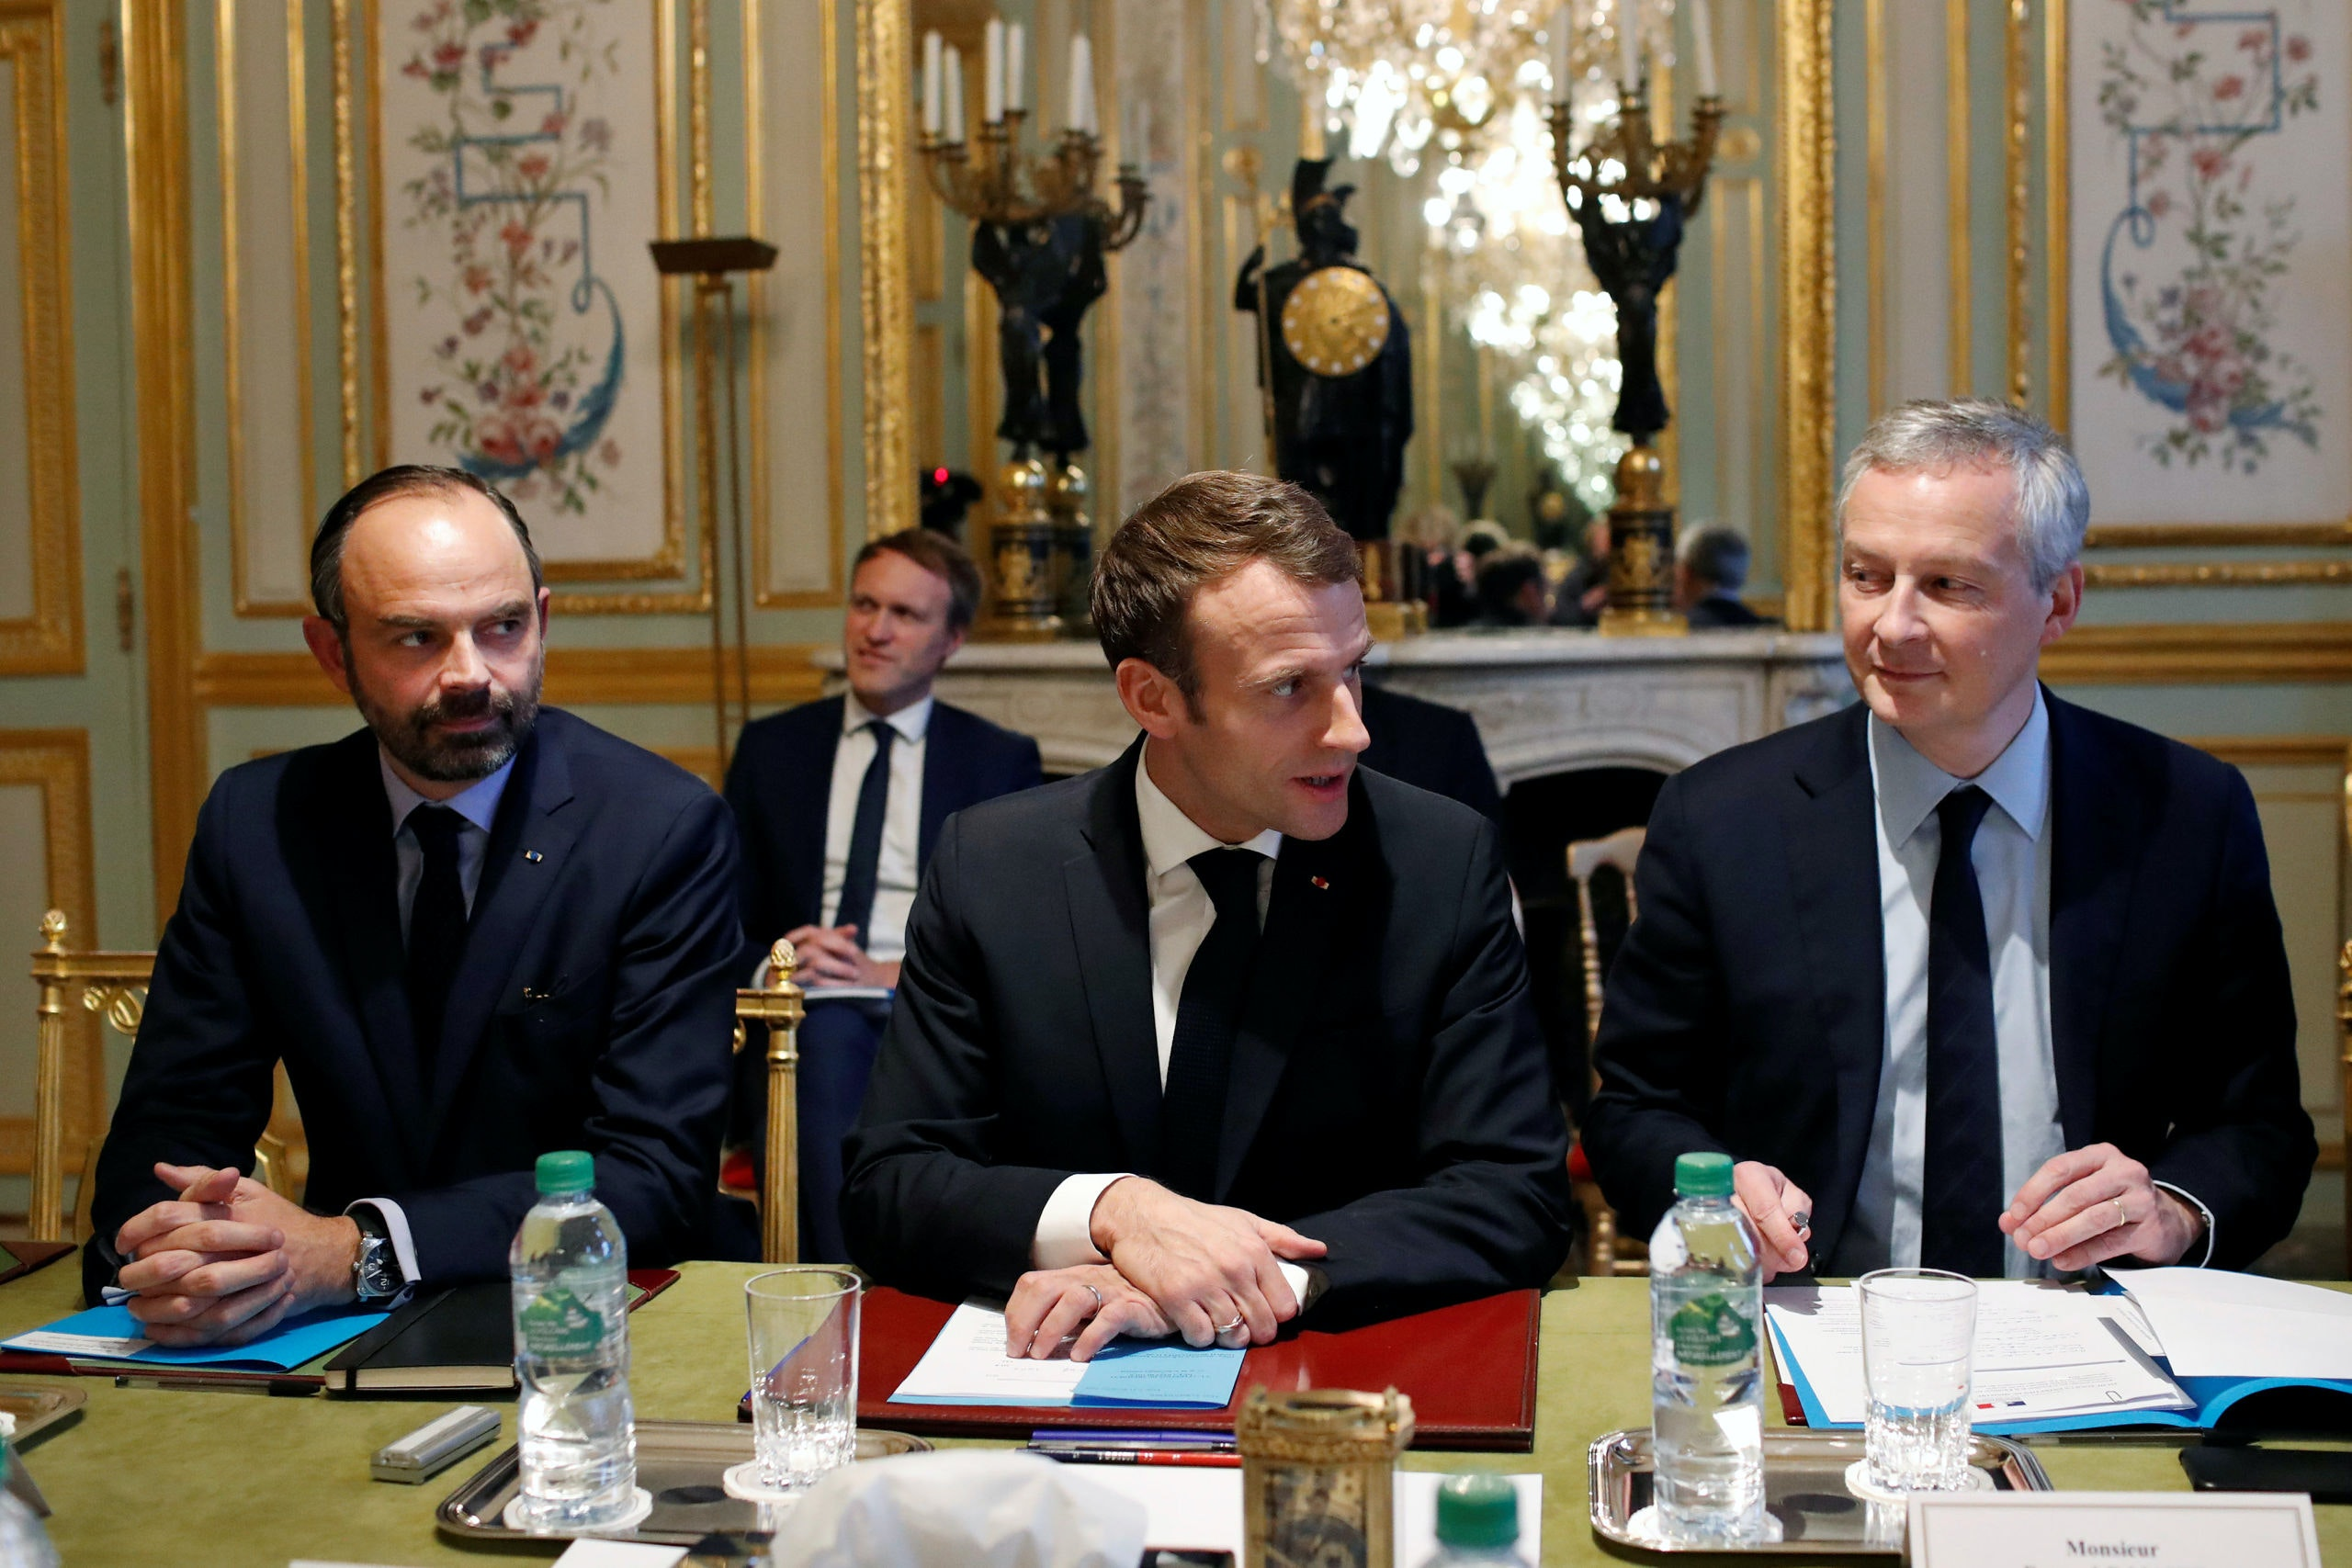 France's President Emmanuel Macron, France's Prime Minister Edouard Philippe and France's Finance Minister Bruno Le Maire attend a meeting with the representatives of the banking sector at the Elysee Palace in Paris, France, December 11, 2018. Thibault Camus/Pool via REUTERS